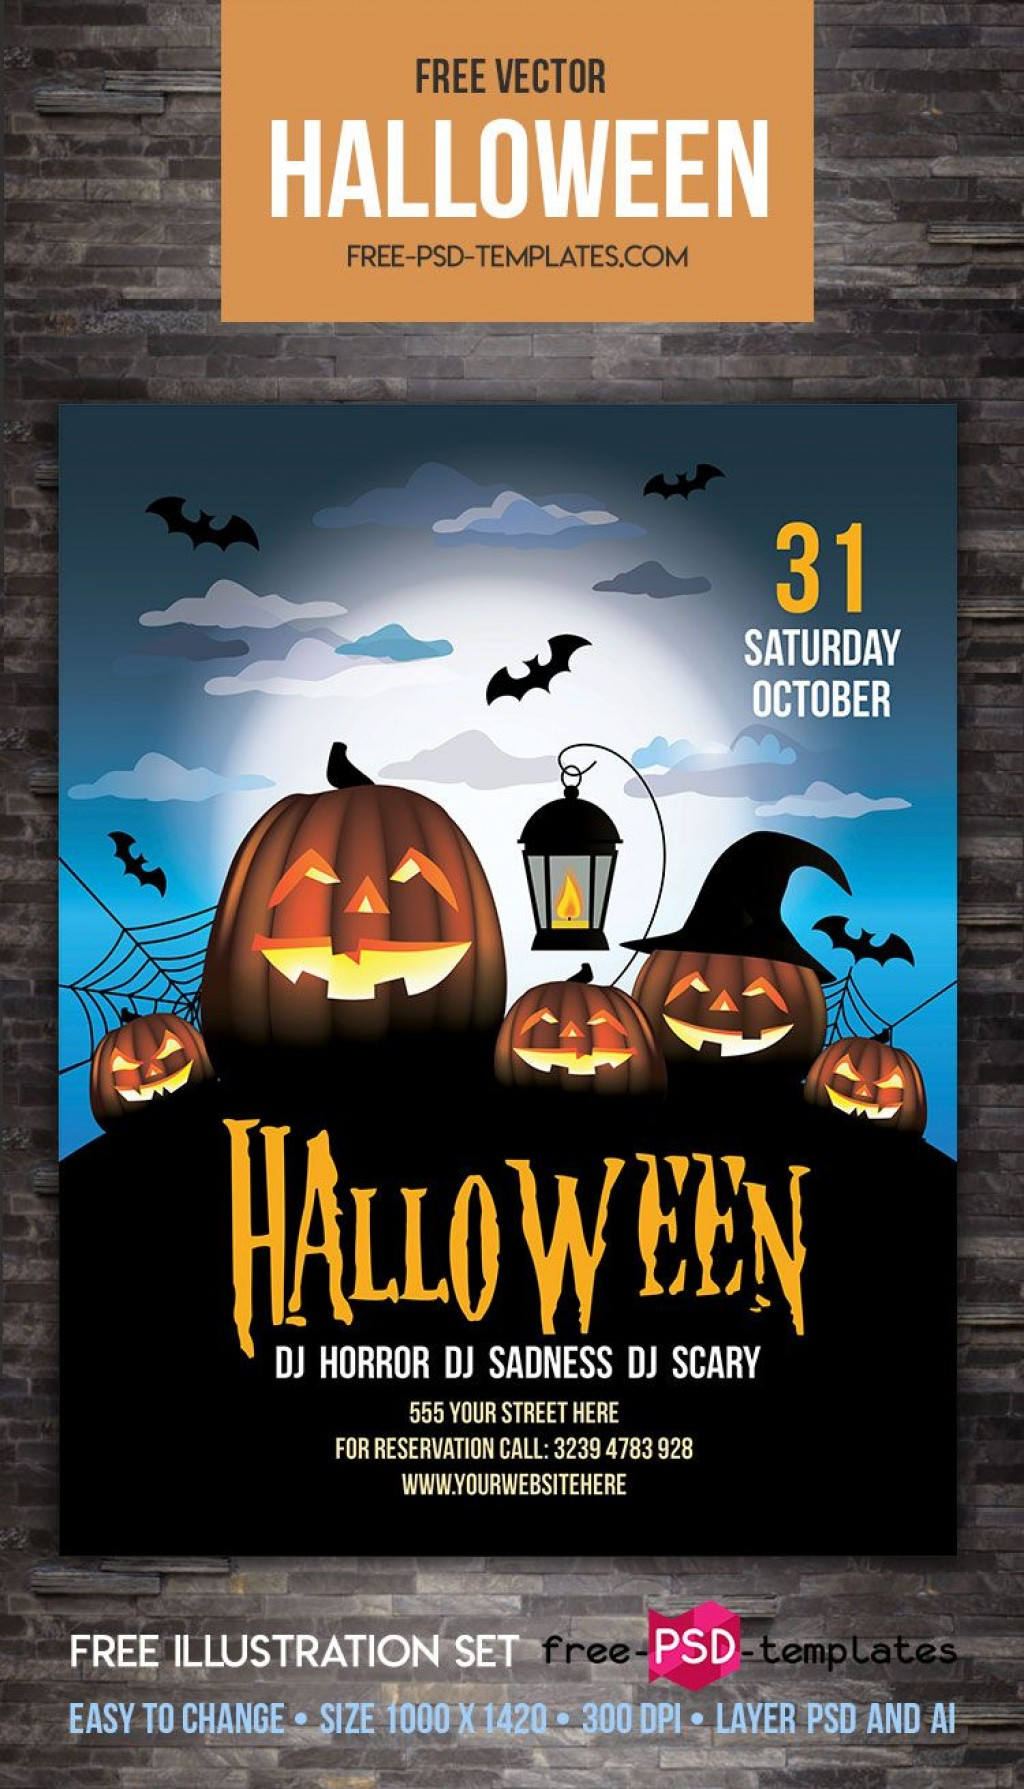 009 Surprising Free Halloween Party Flyer Template Example  TemplatesLarge